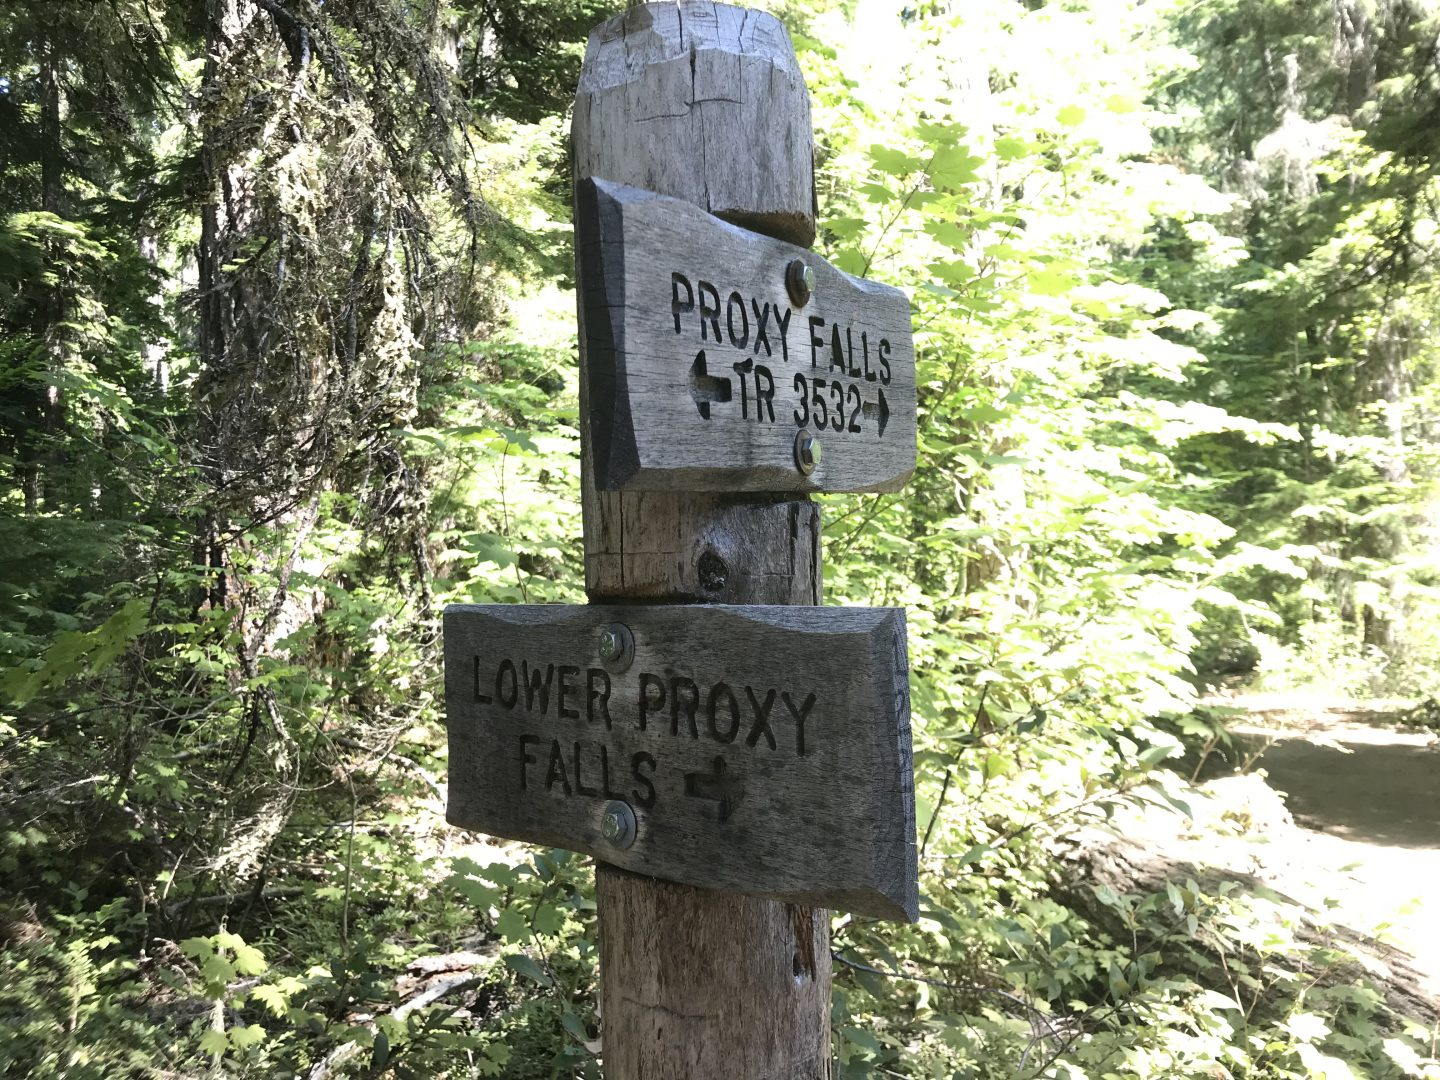 Sign at trail junction on Proxy Falls trail